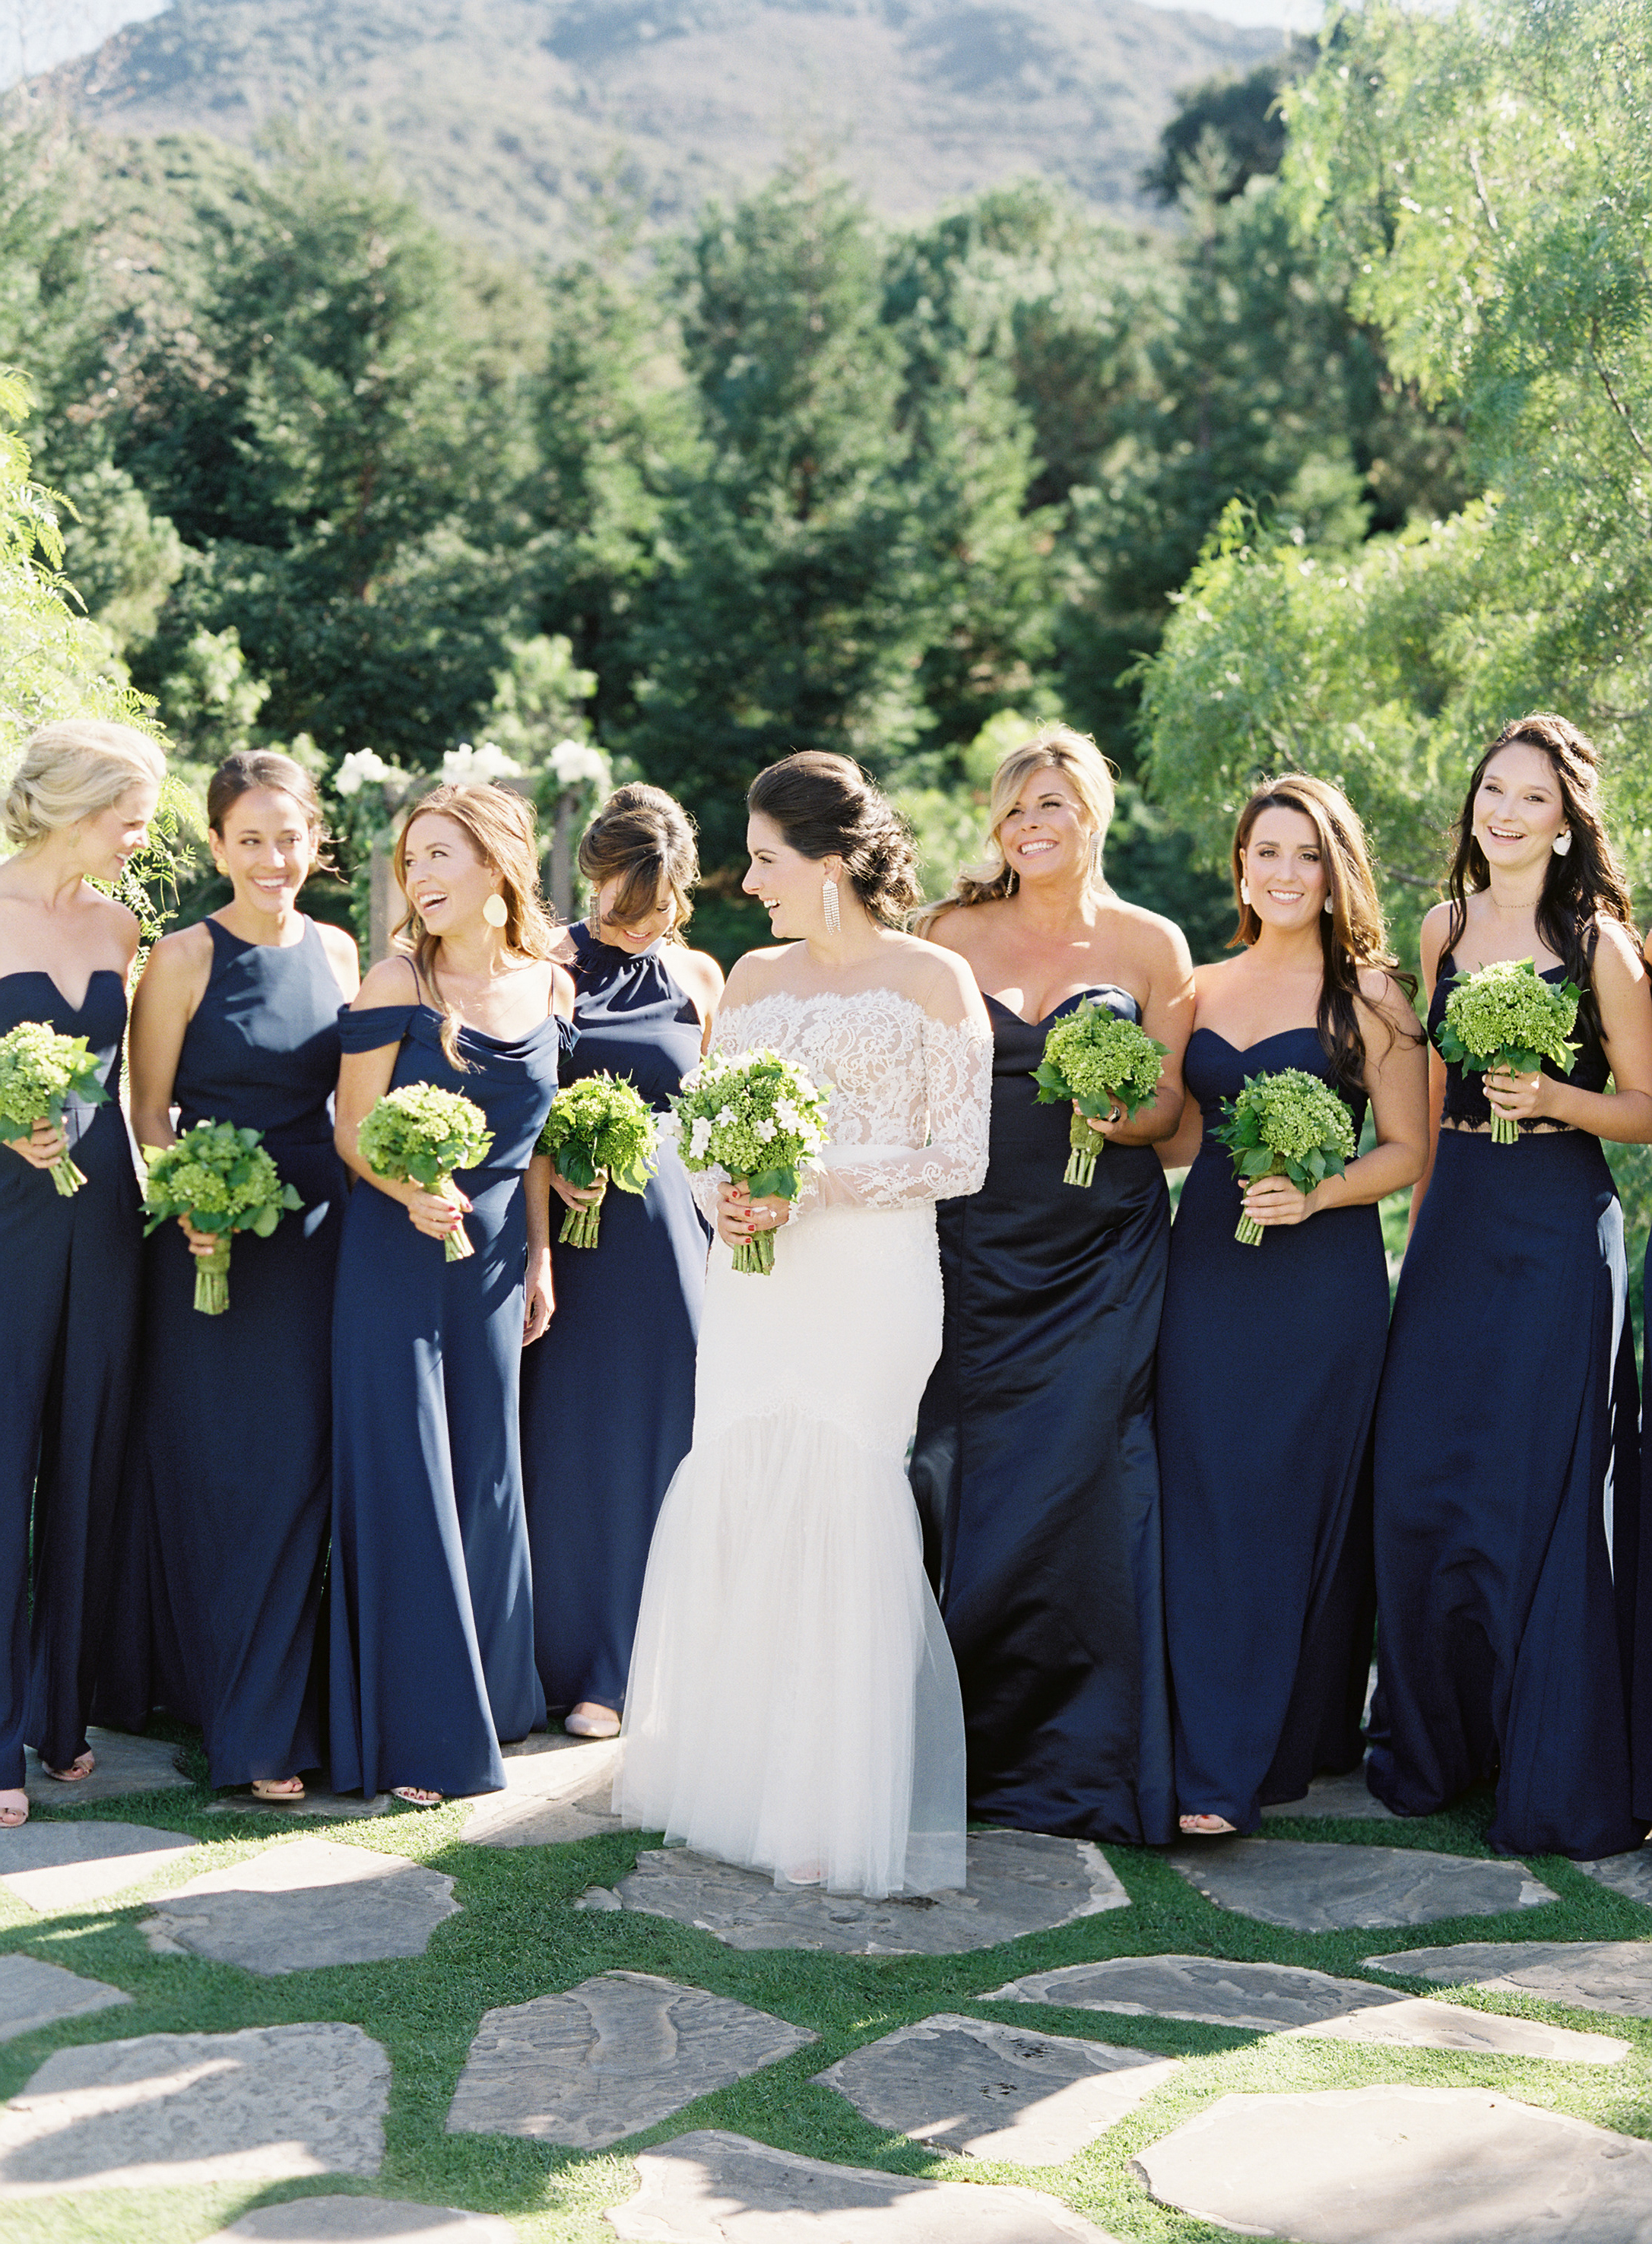 Meghan Mehan Photography - Carmel Valley Ranch Wedding 011.jpg